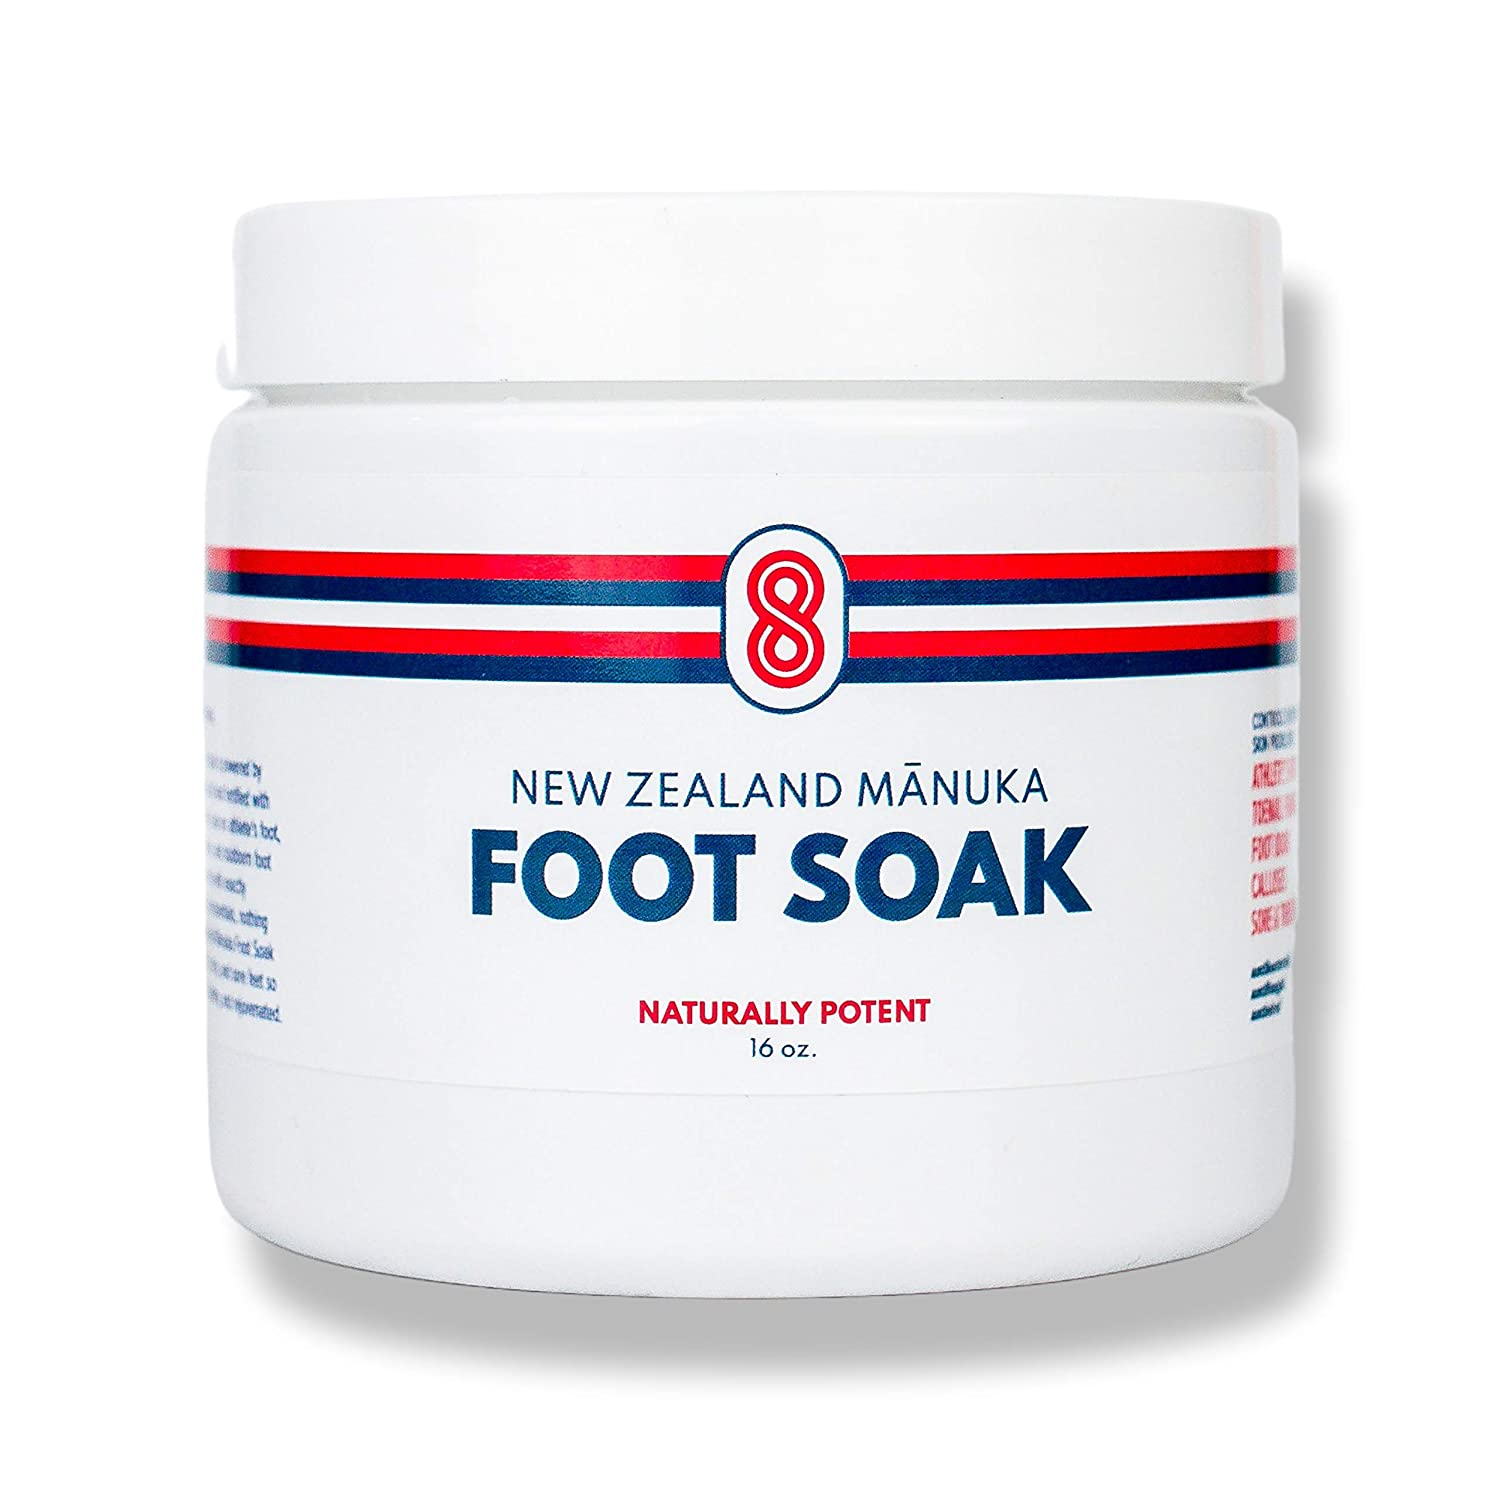 BIOACTIVE 8 MANUKA FOOT SOAK with Epsom Salts for Foot Bath. 30X More Potent than Tea Tree Oil Foot Soak. Foot Detox For Dry Cracked Feet, Toenail Fungus, Athlete's Foot, Smelly Feet. Made in USA.